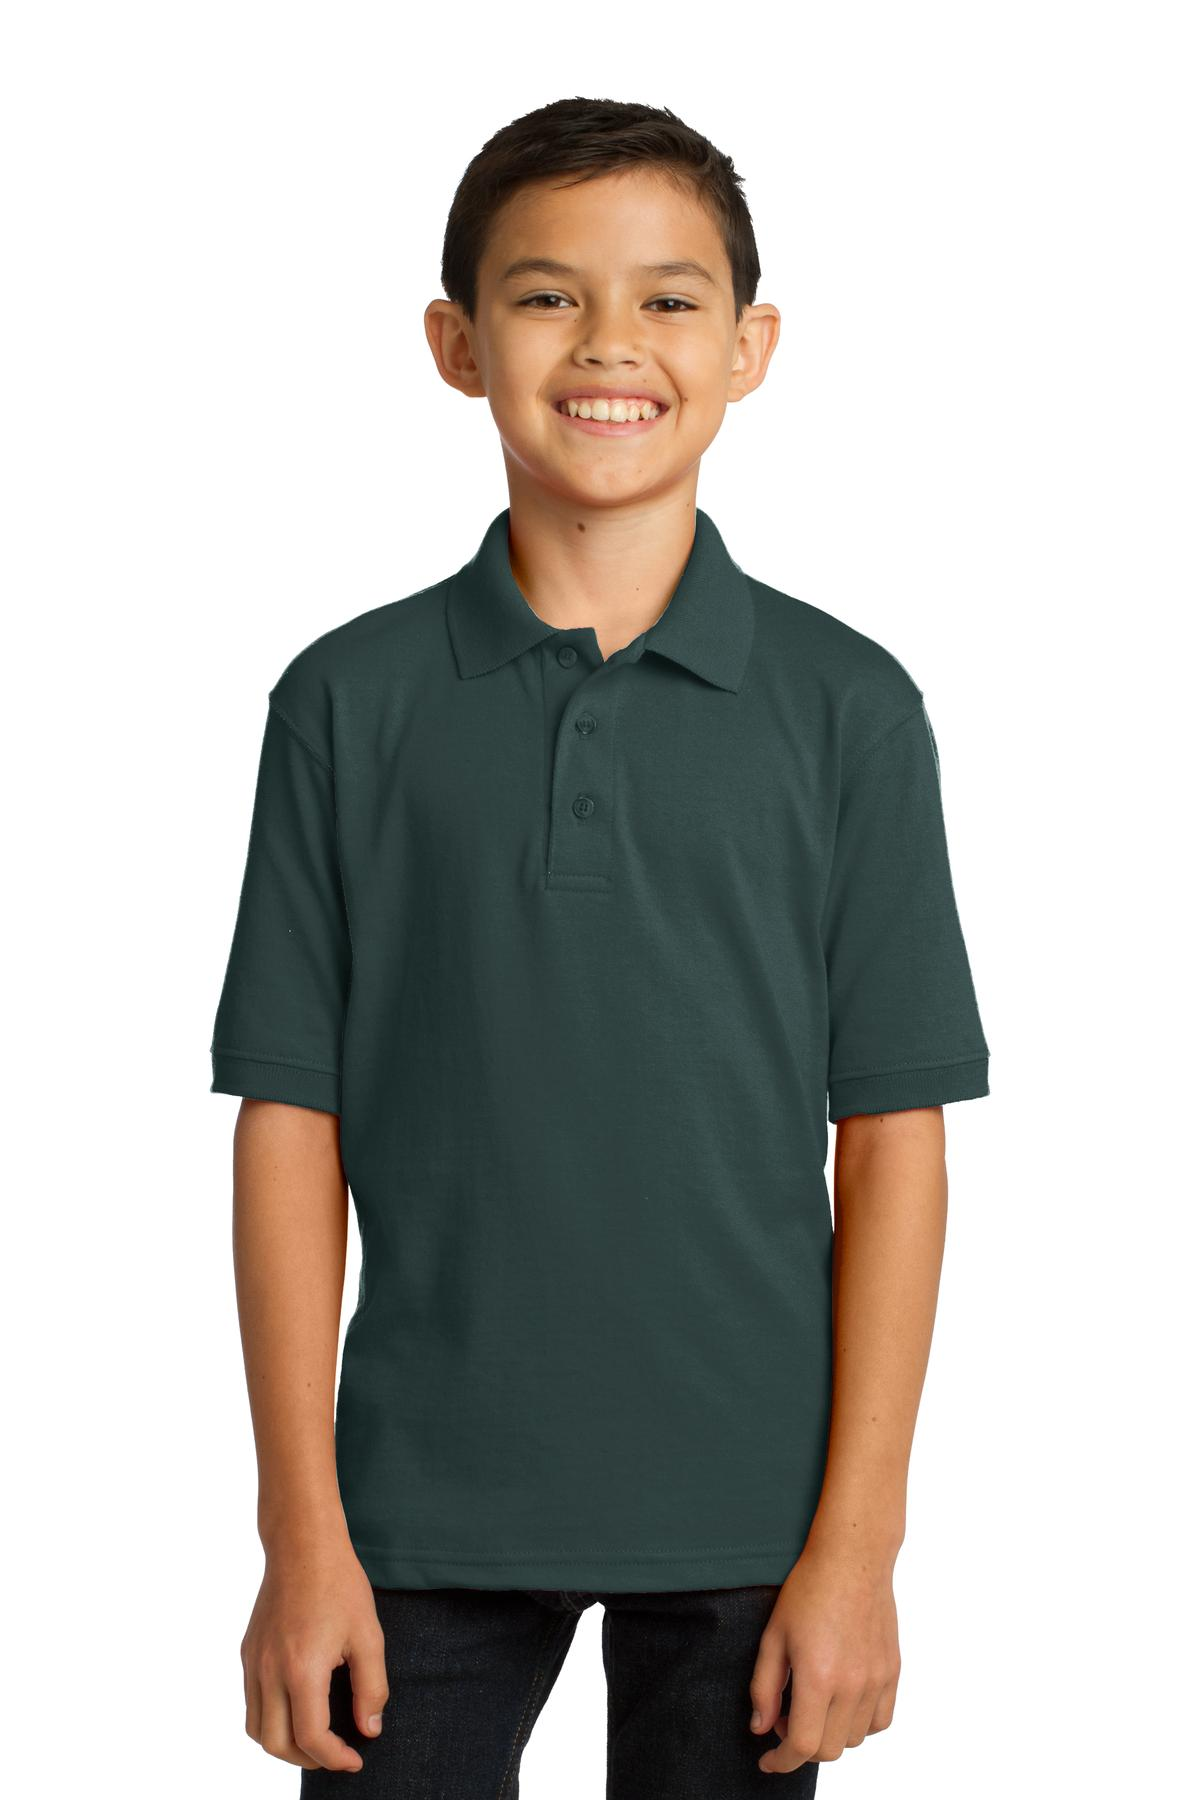 Port & Company ®  Youth Core Blend Jersey Knit Polo. KP55Y - Dark Green